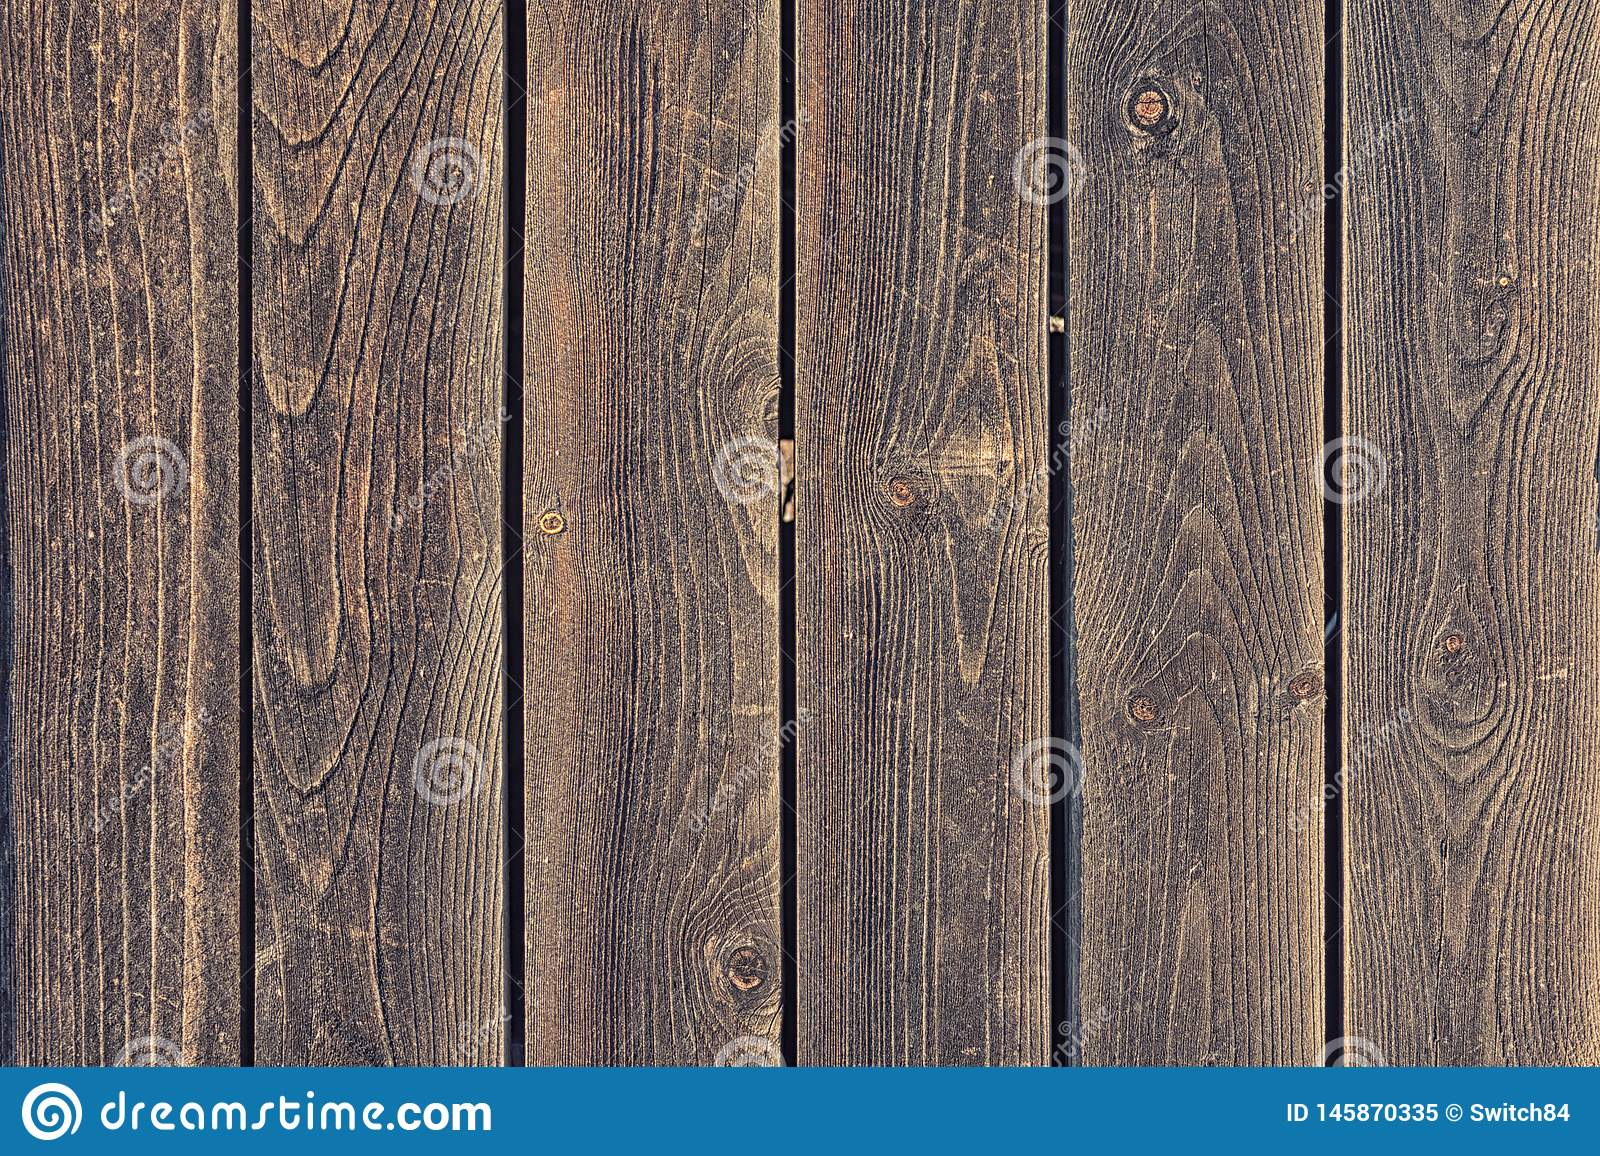 A fence of wooden planks. Background with texture of old wood. Photo for layouts.